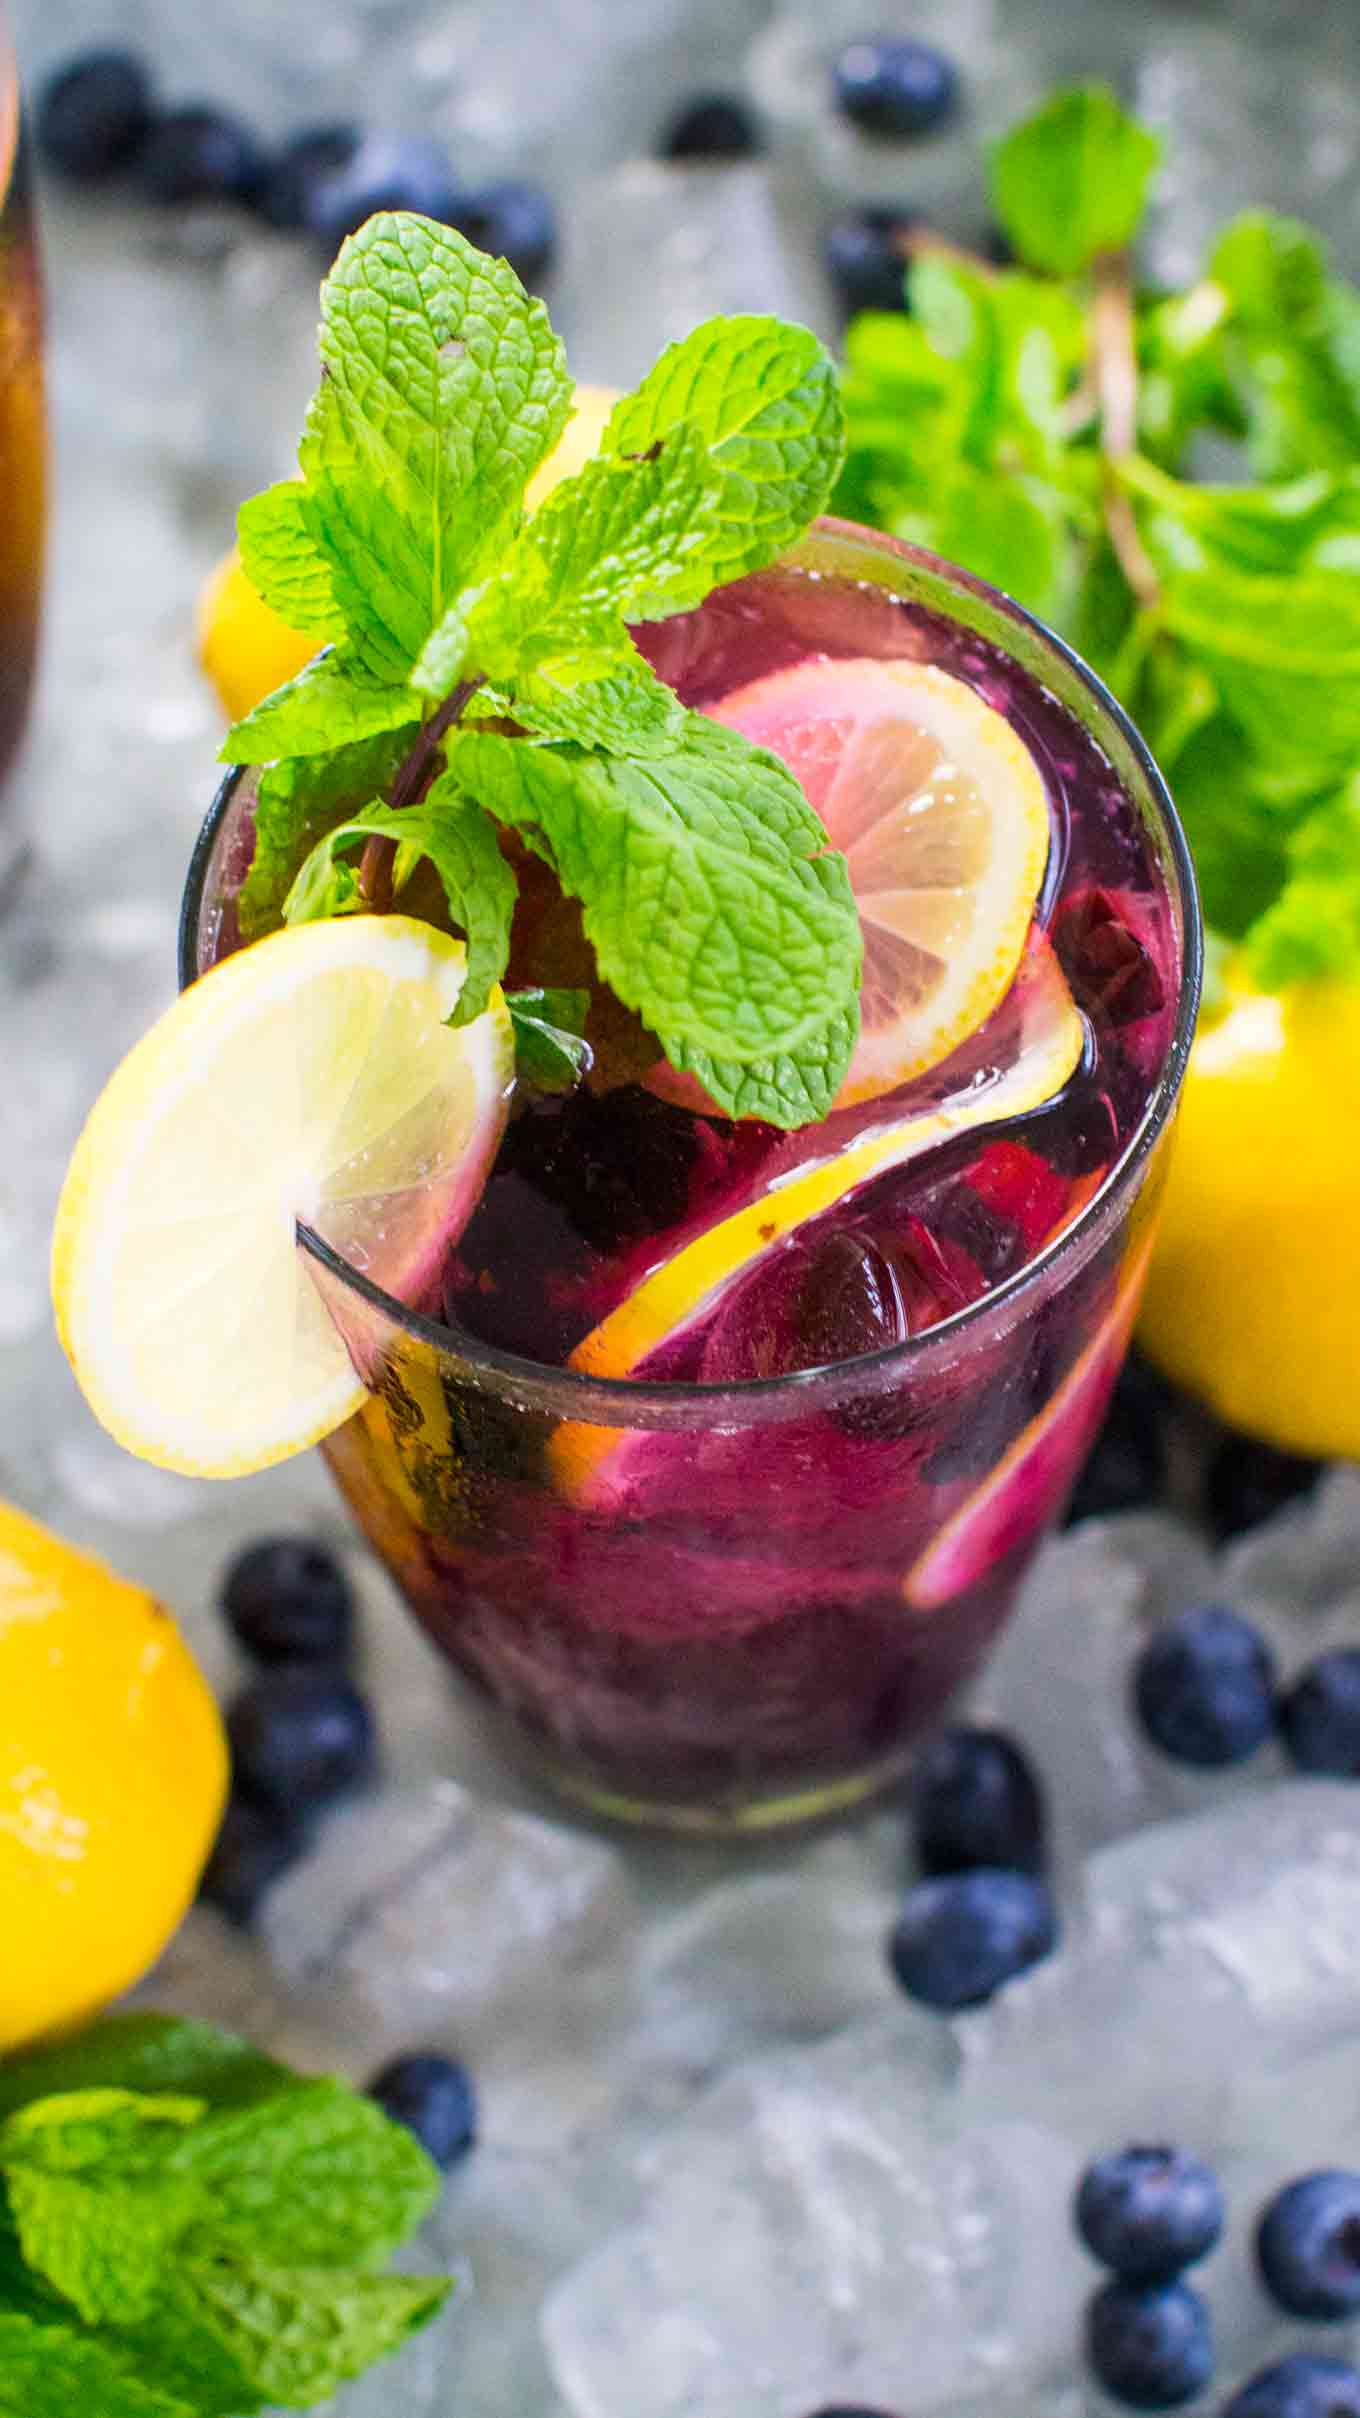 Pretty and refreshing Blueberry Lemonade tastes delicious and refreshing year round. Made easy with sweet blueberry simple syrup and fresh lemon juice.